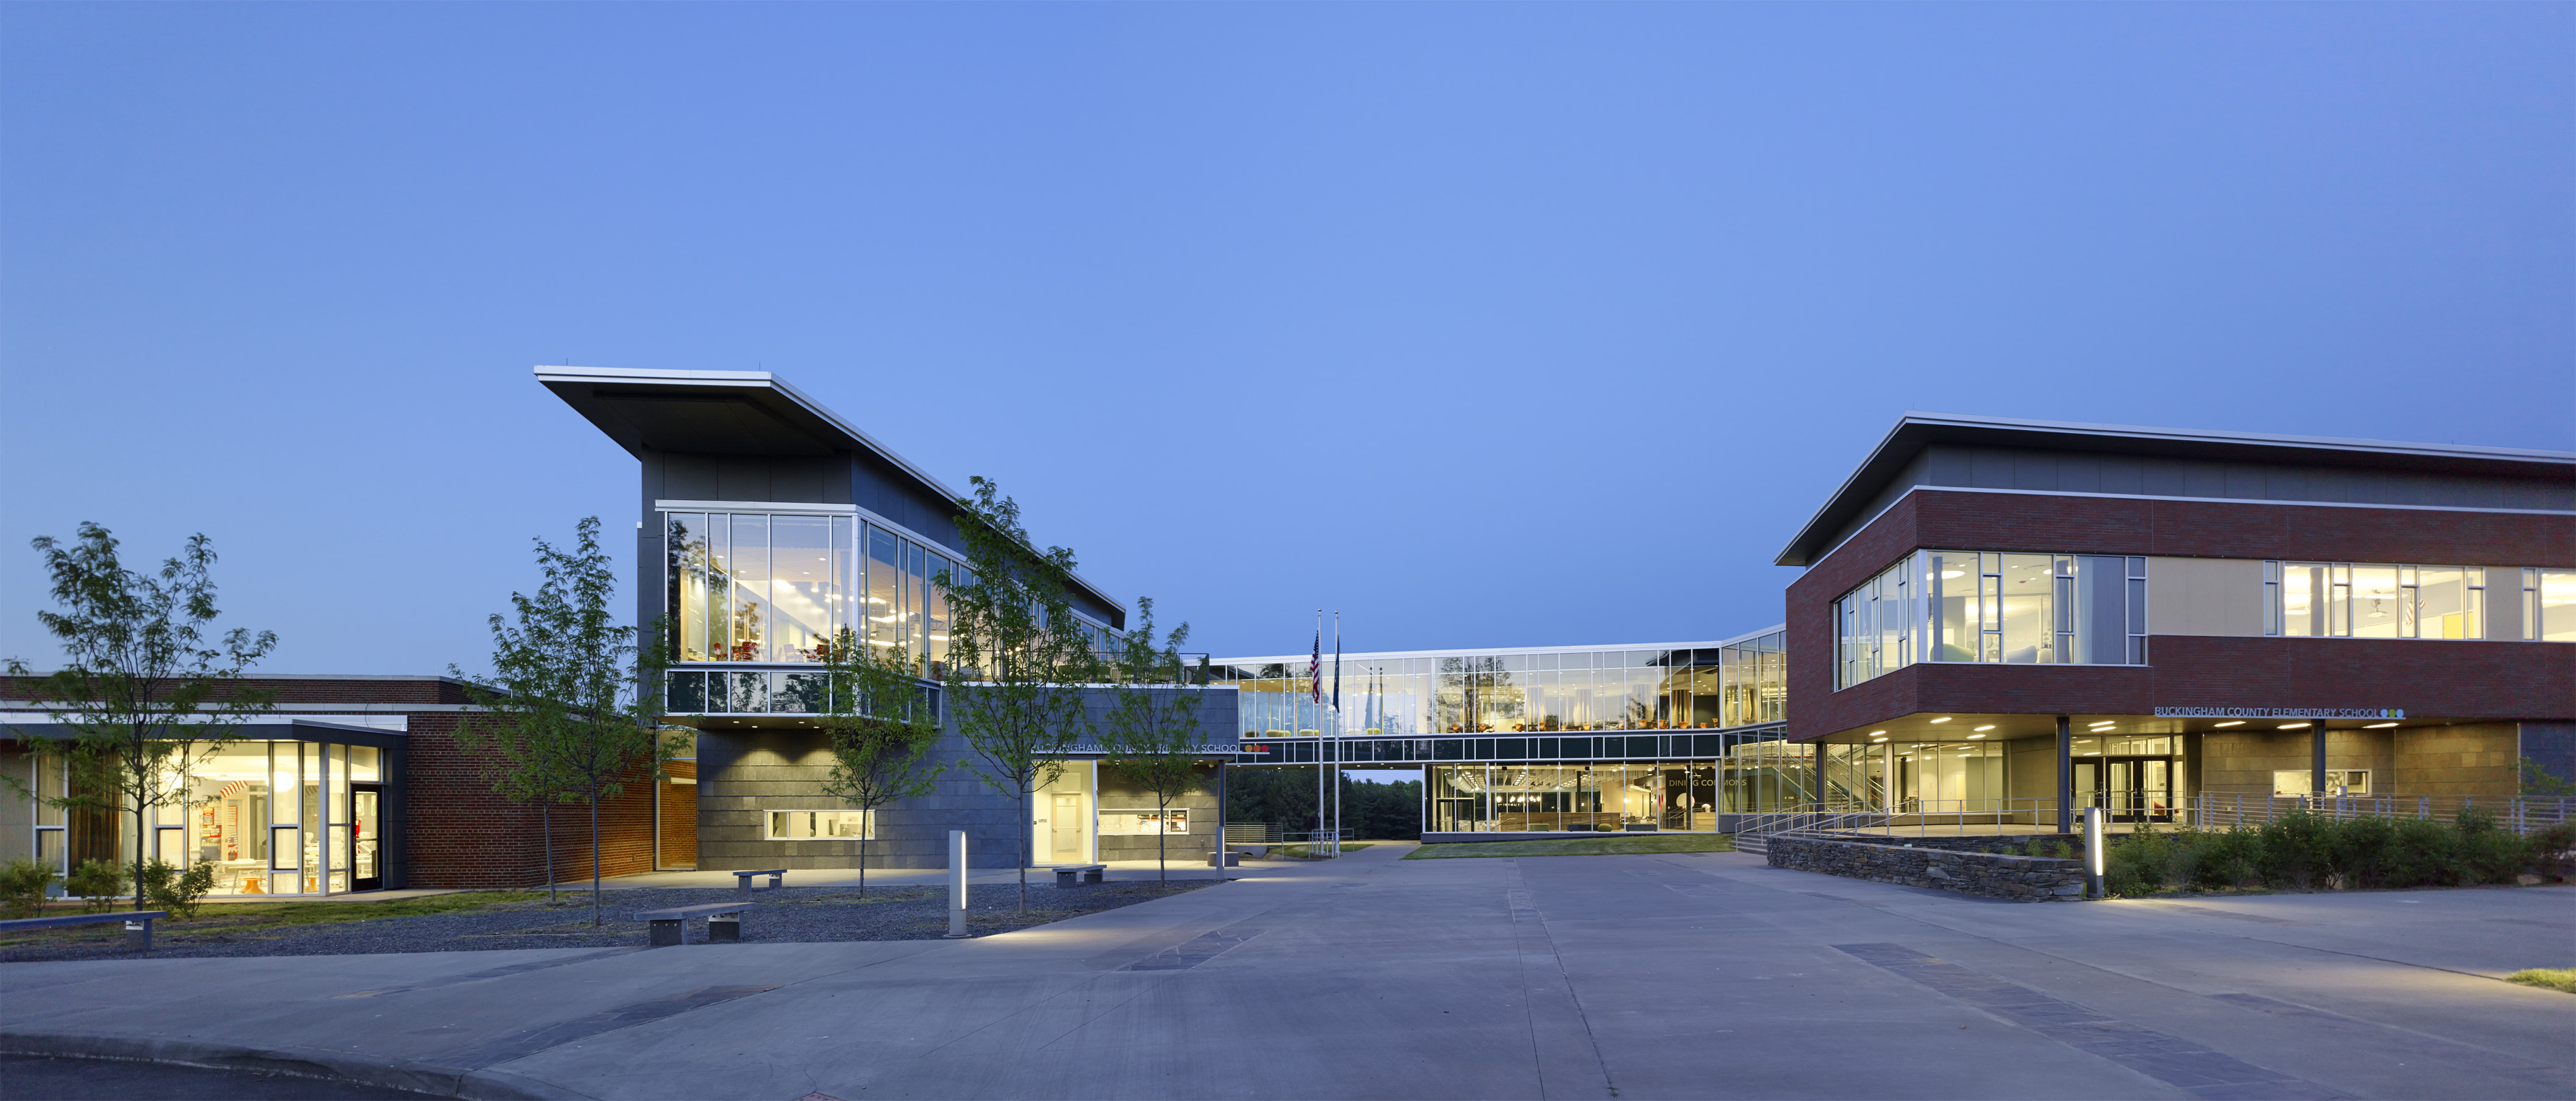 VMDO Nominated in Inaugural USGBC Best of Awards! | VMDO ...